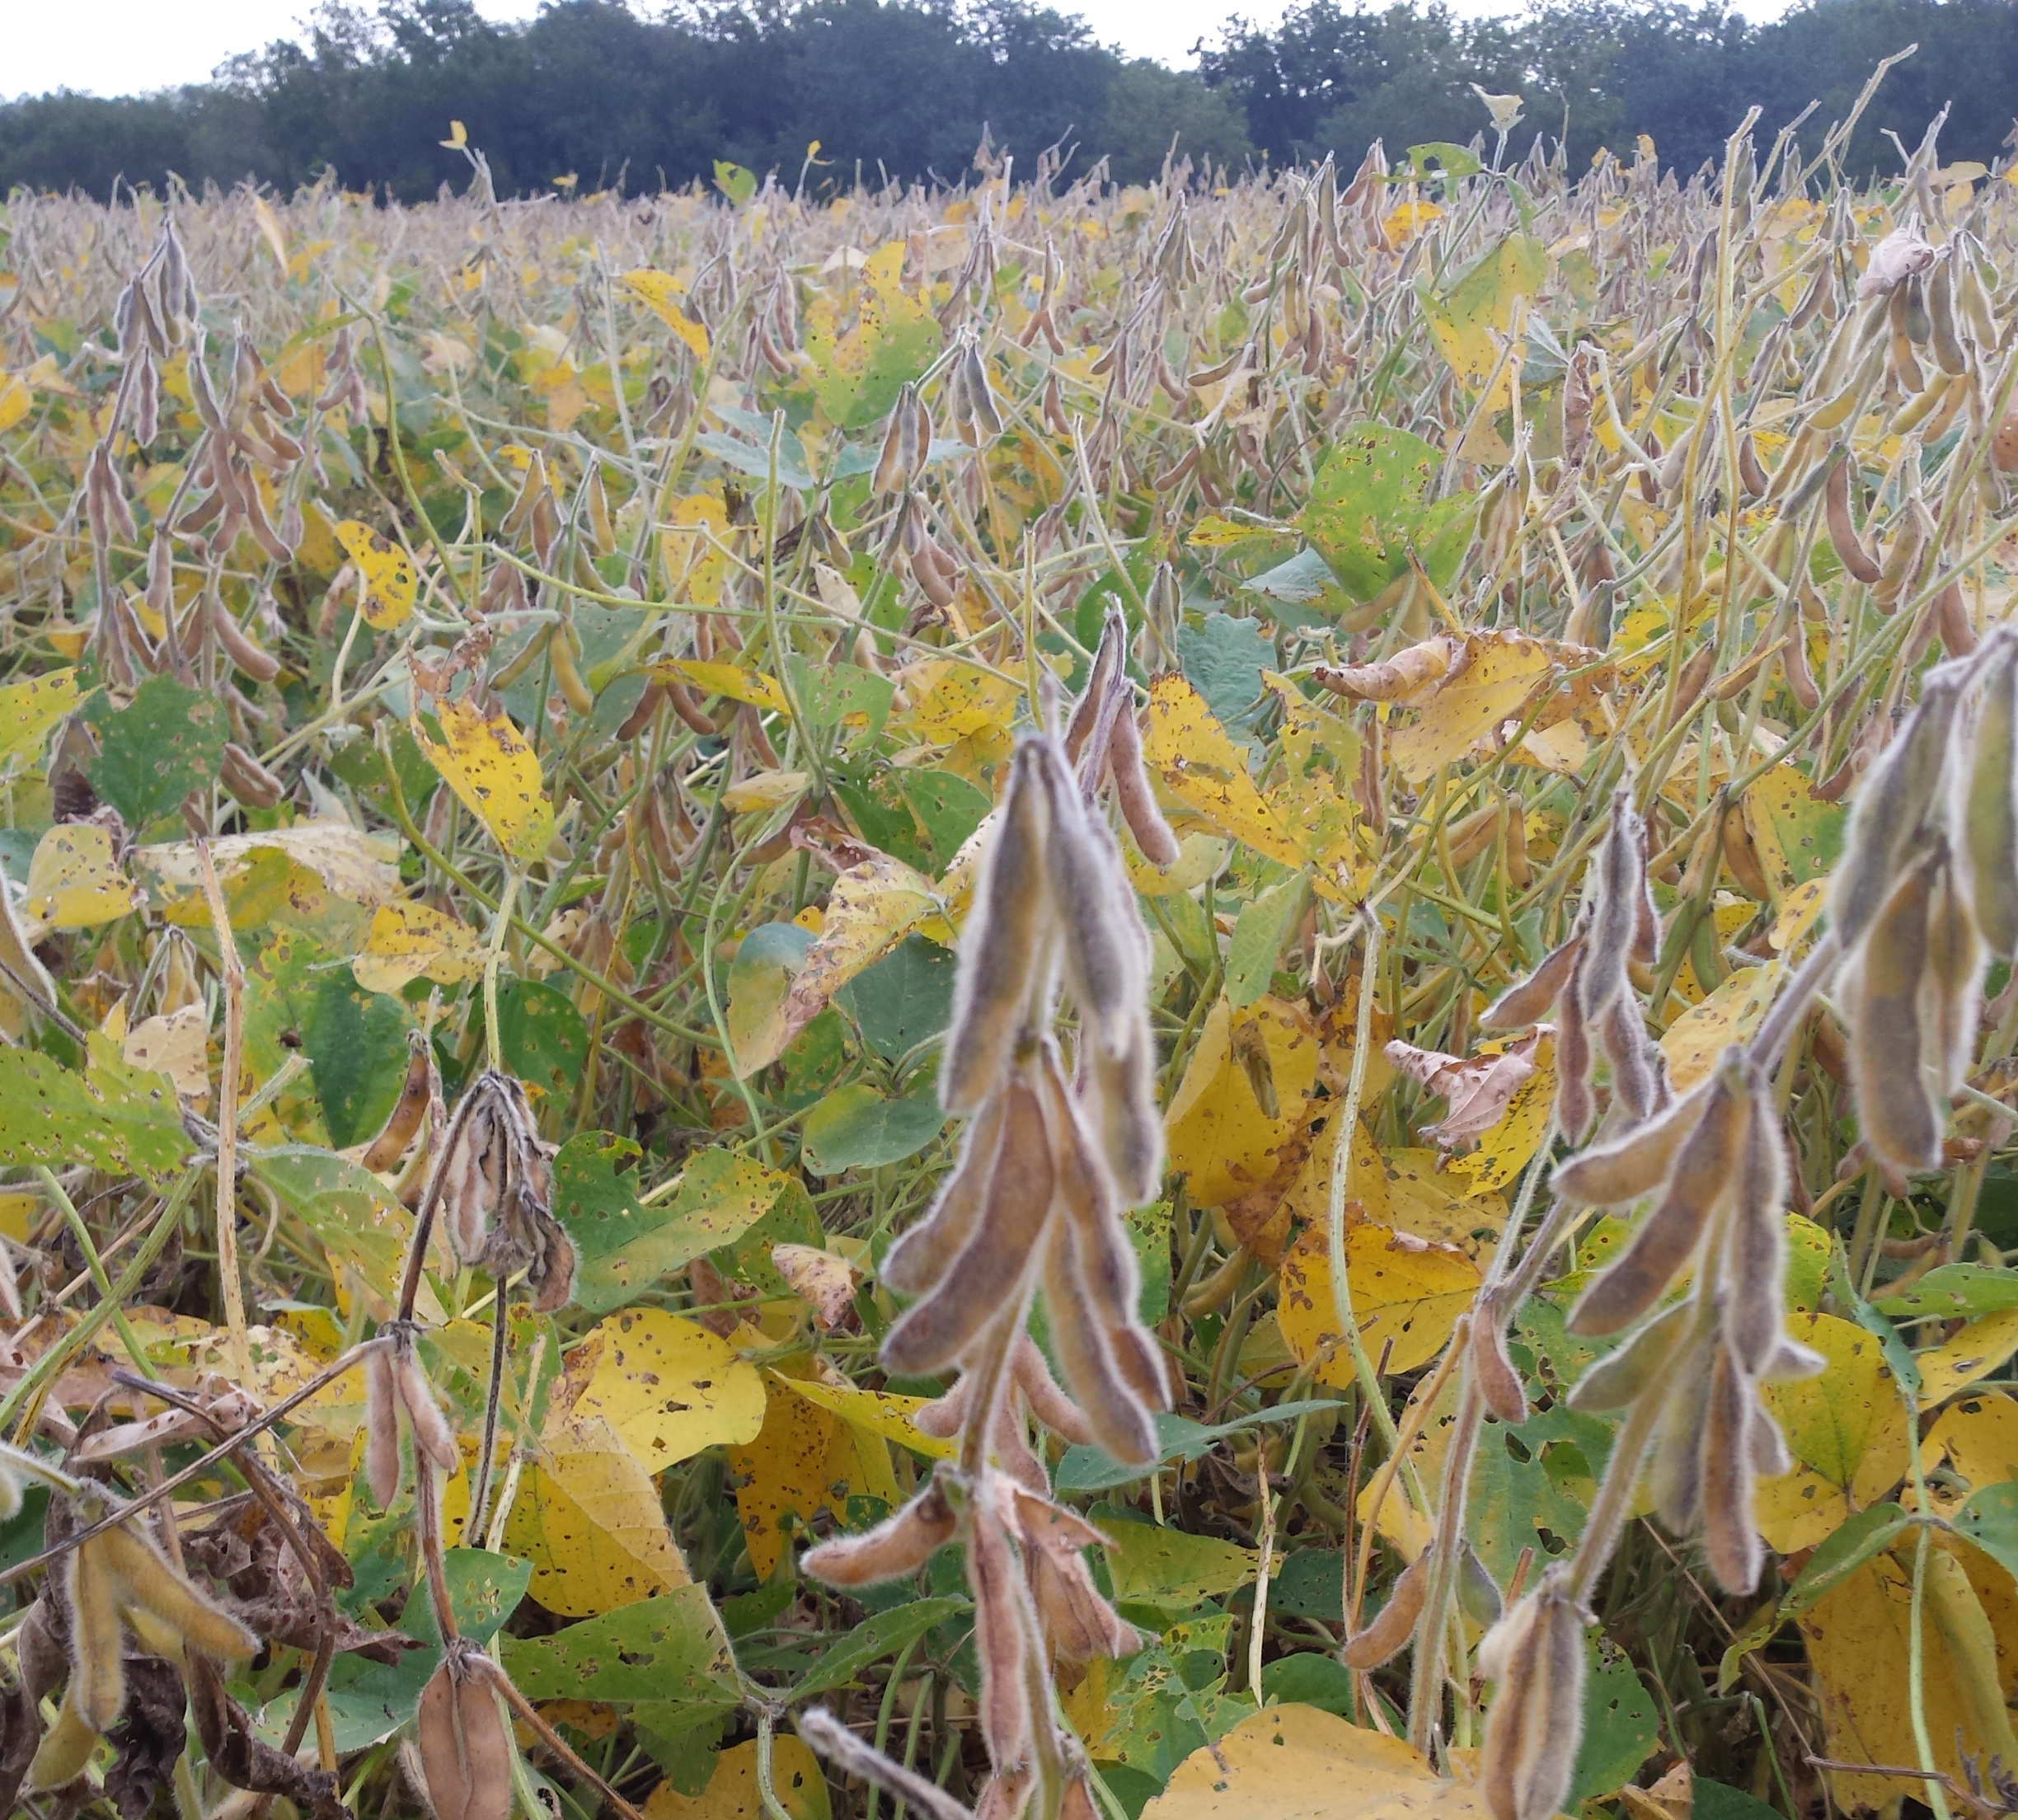 Mature soybean pods but green stems at harvest